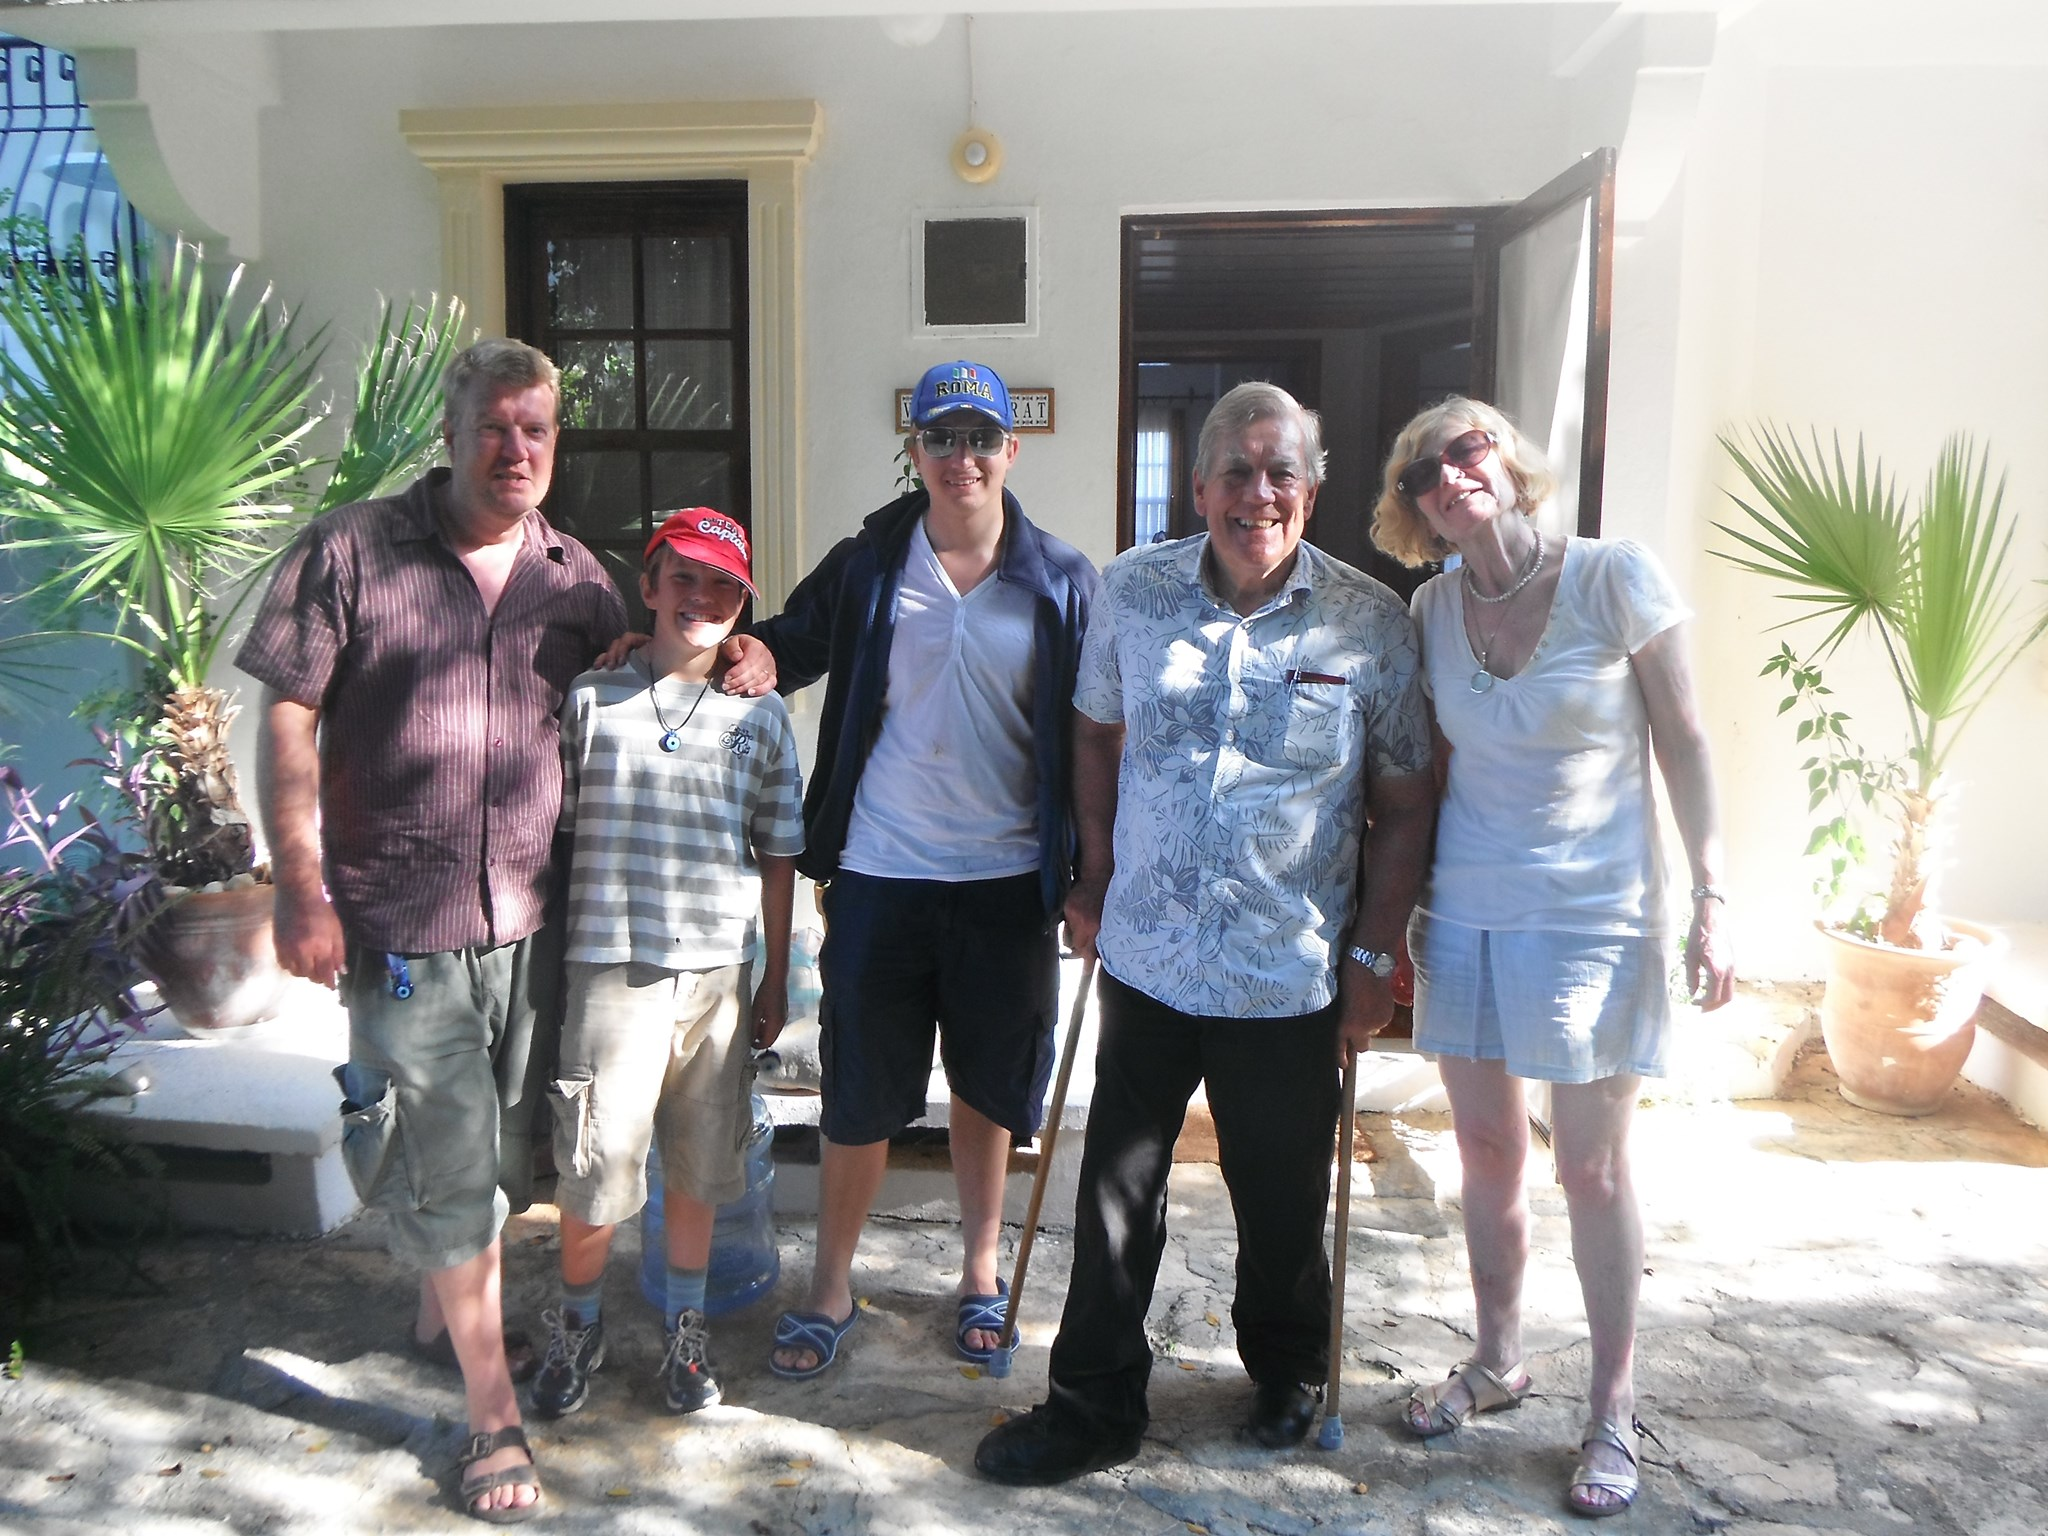 In Turkey with Murdin grandparents Paul and Lesley